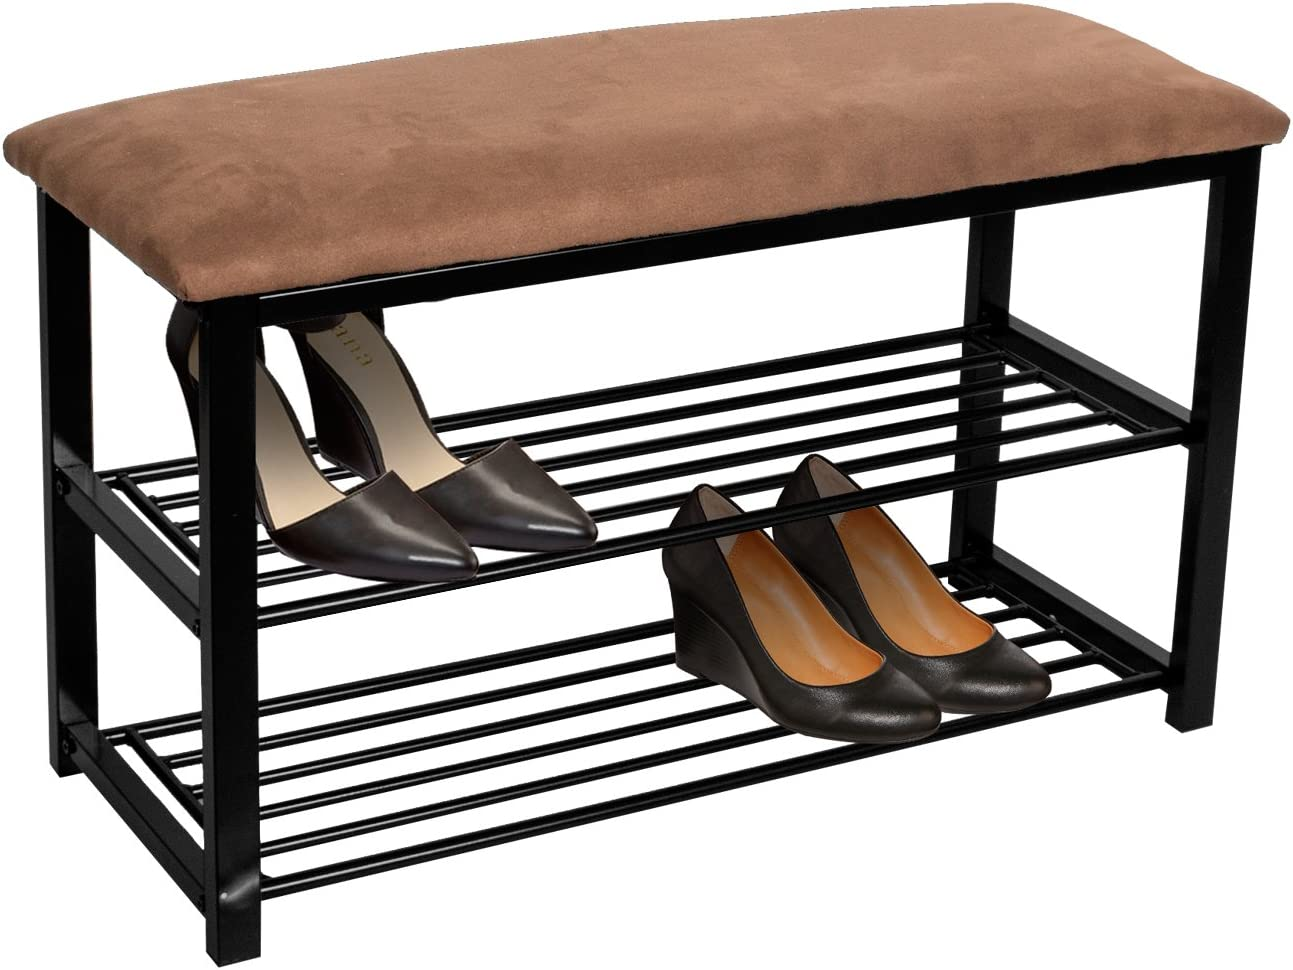 Sorbus Shoe Rack Bench Shoes Racks Organizer Perfect Bench Seat Storage for Hallway Entryway, Mudroom, Closet, Bedroom, etc Brown